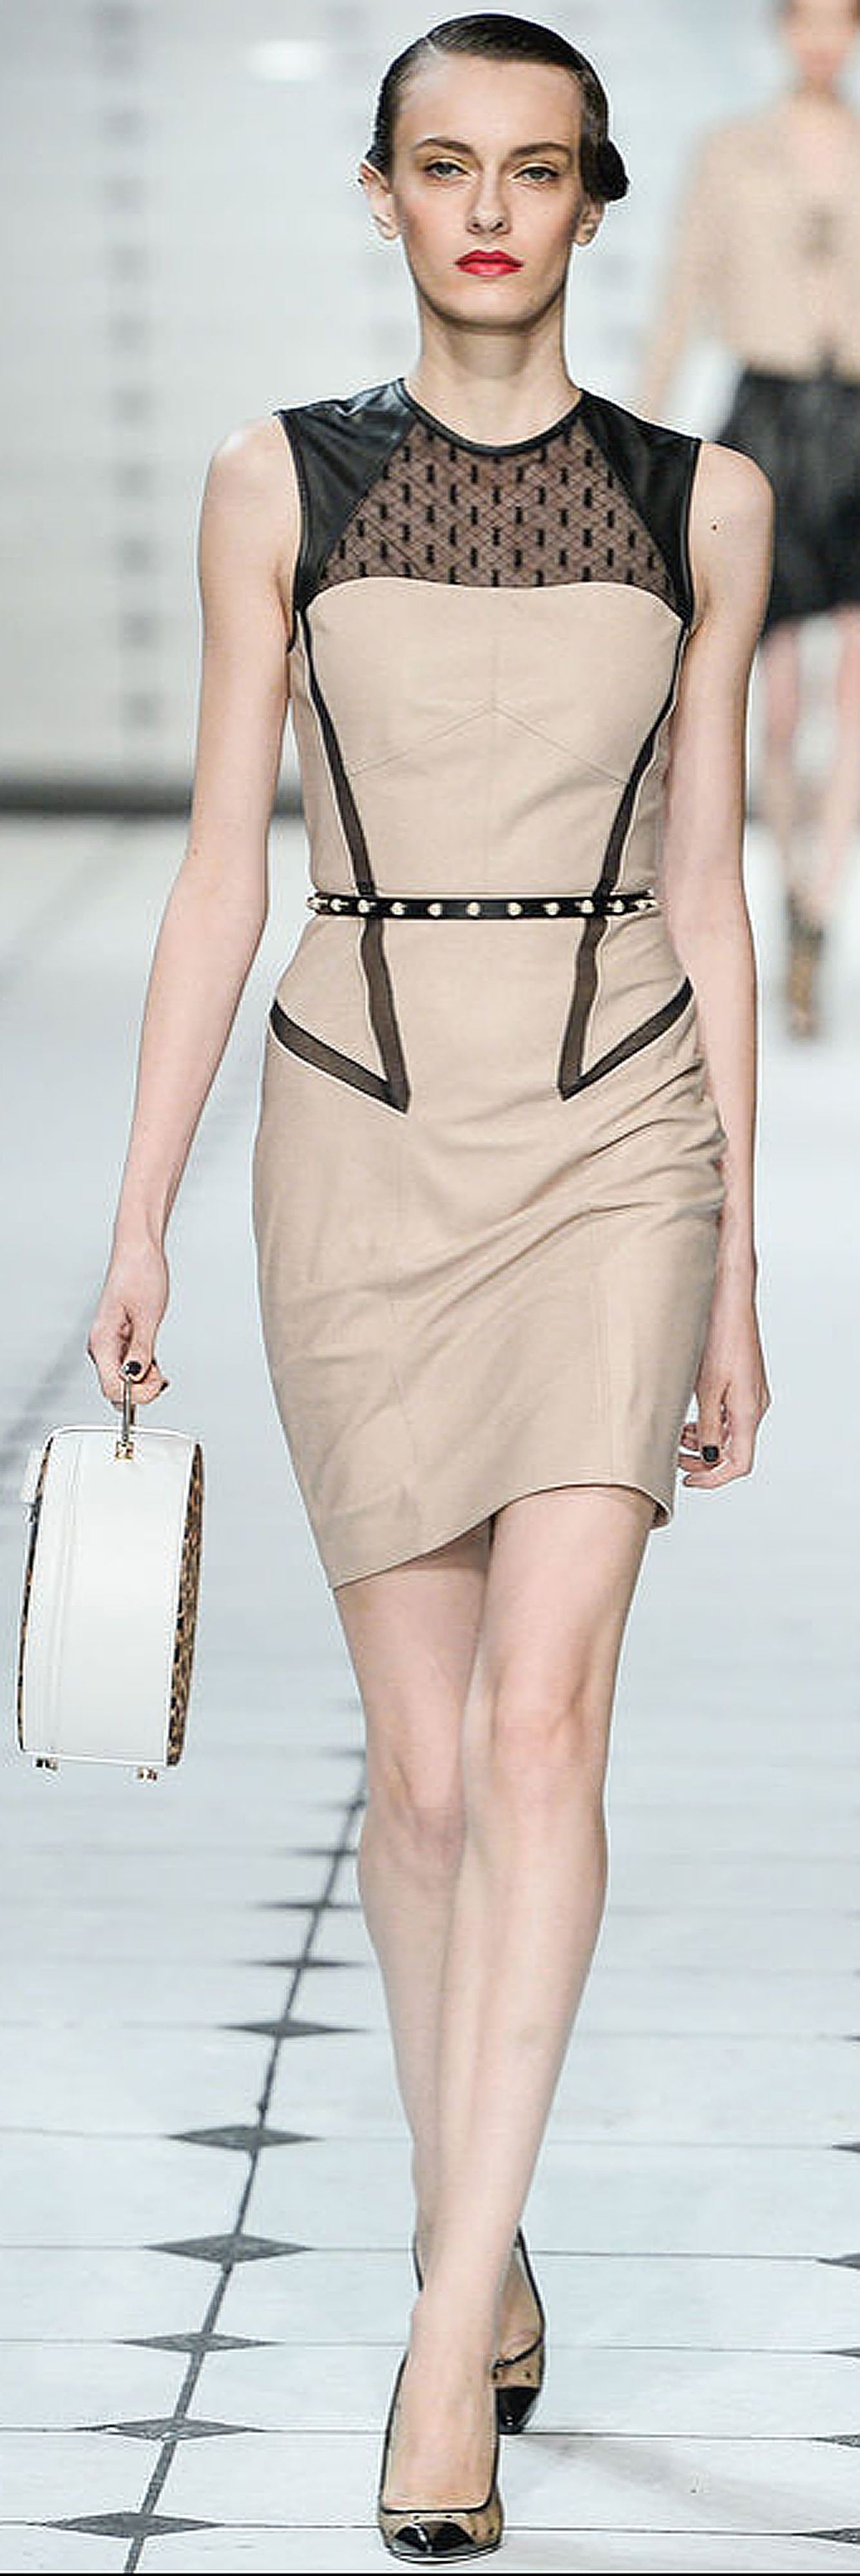 Jason Wu 2013 Ready-To-Wear - style.com - Leather and Lace